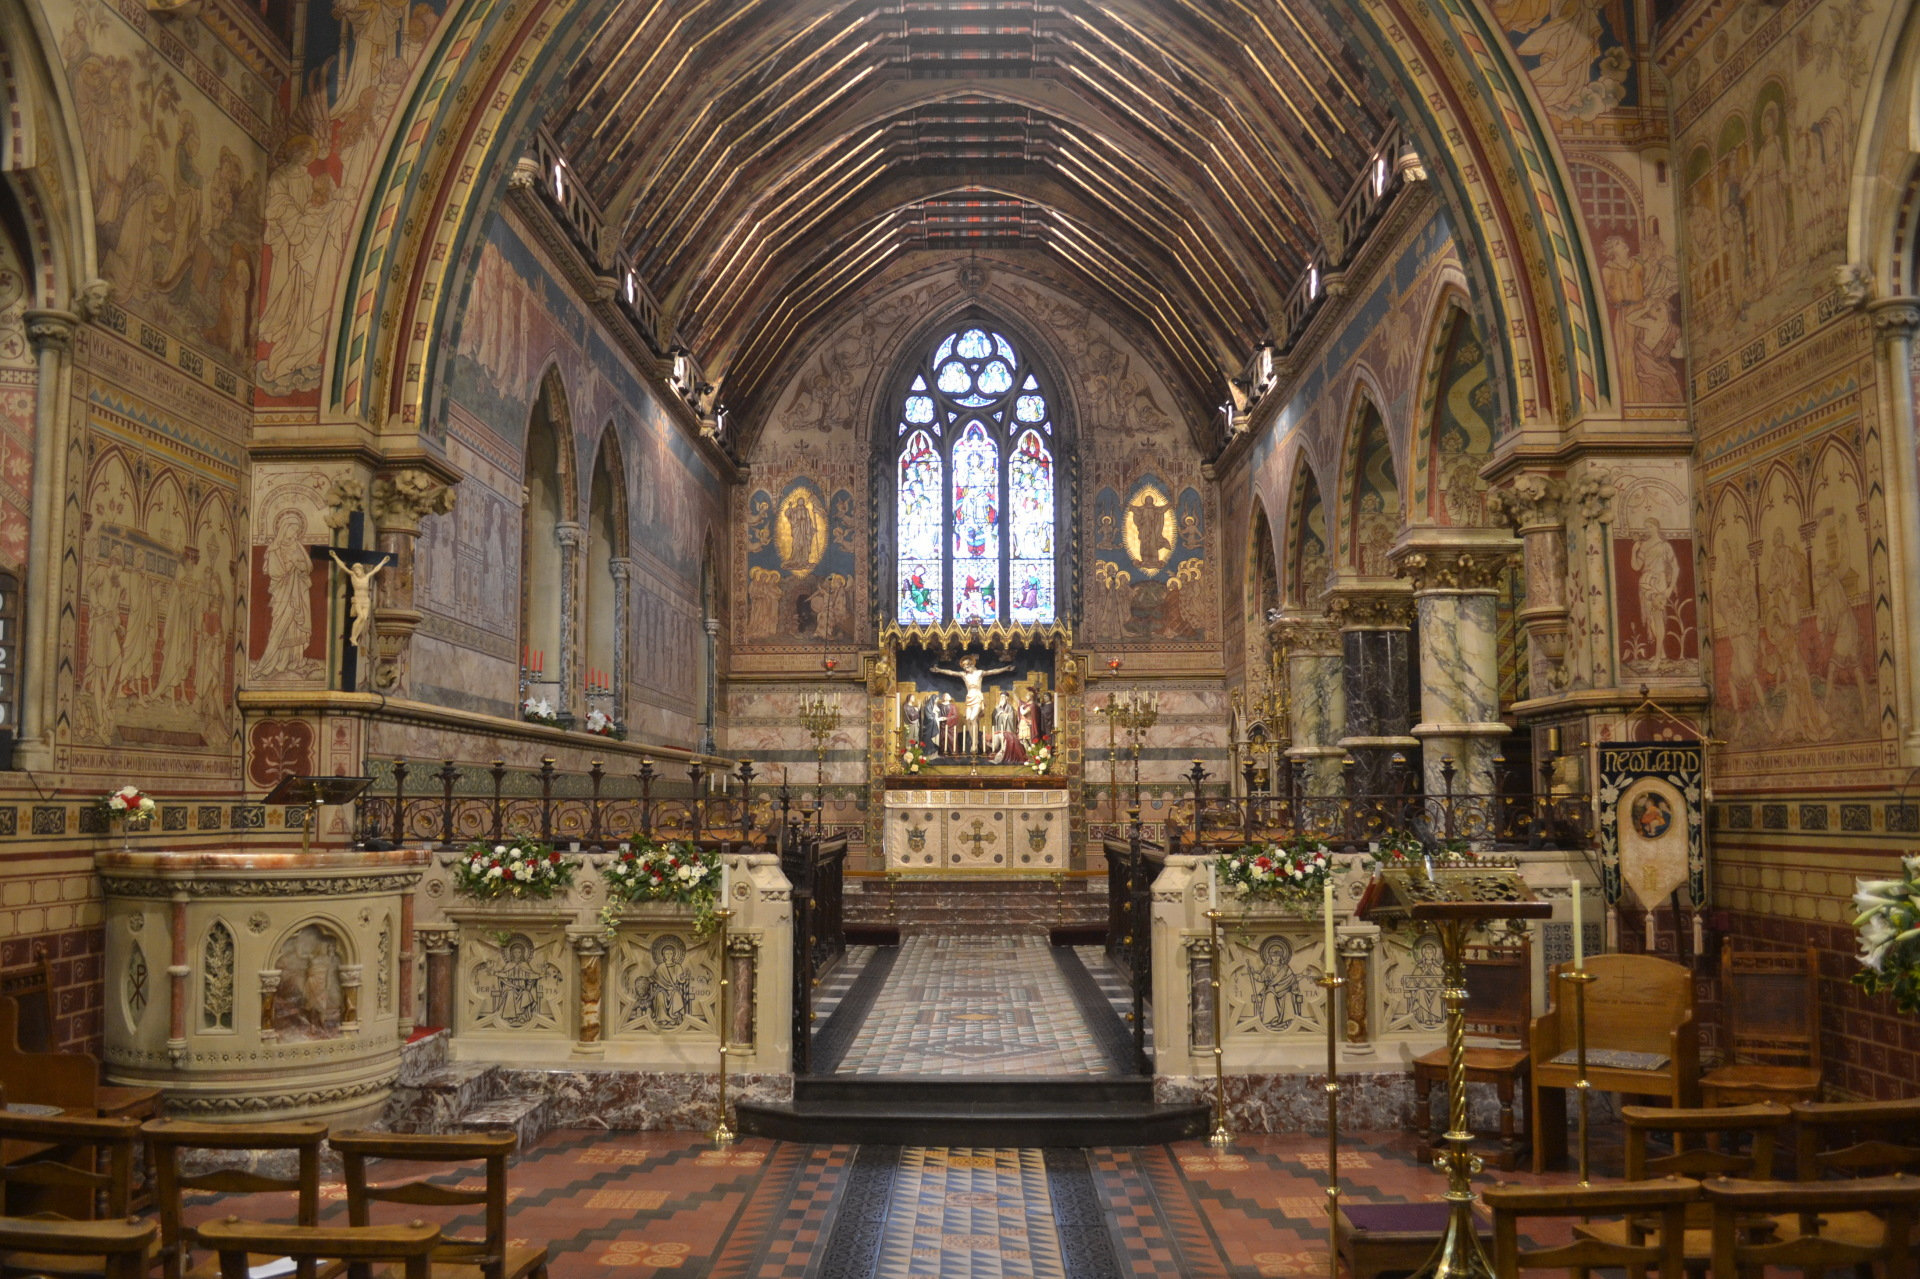 The pulpit, screen, gates and railings